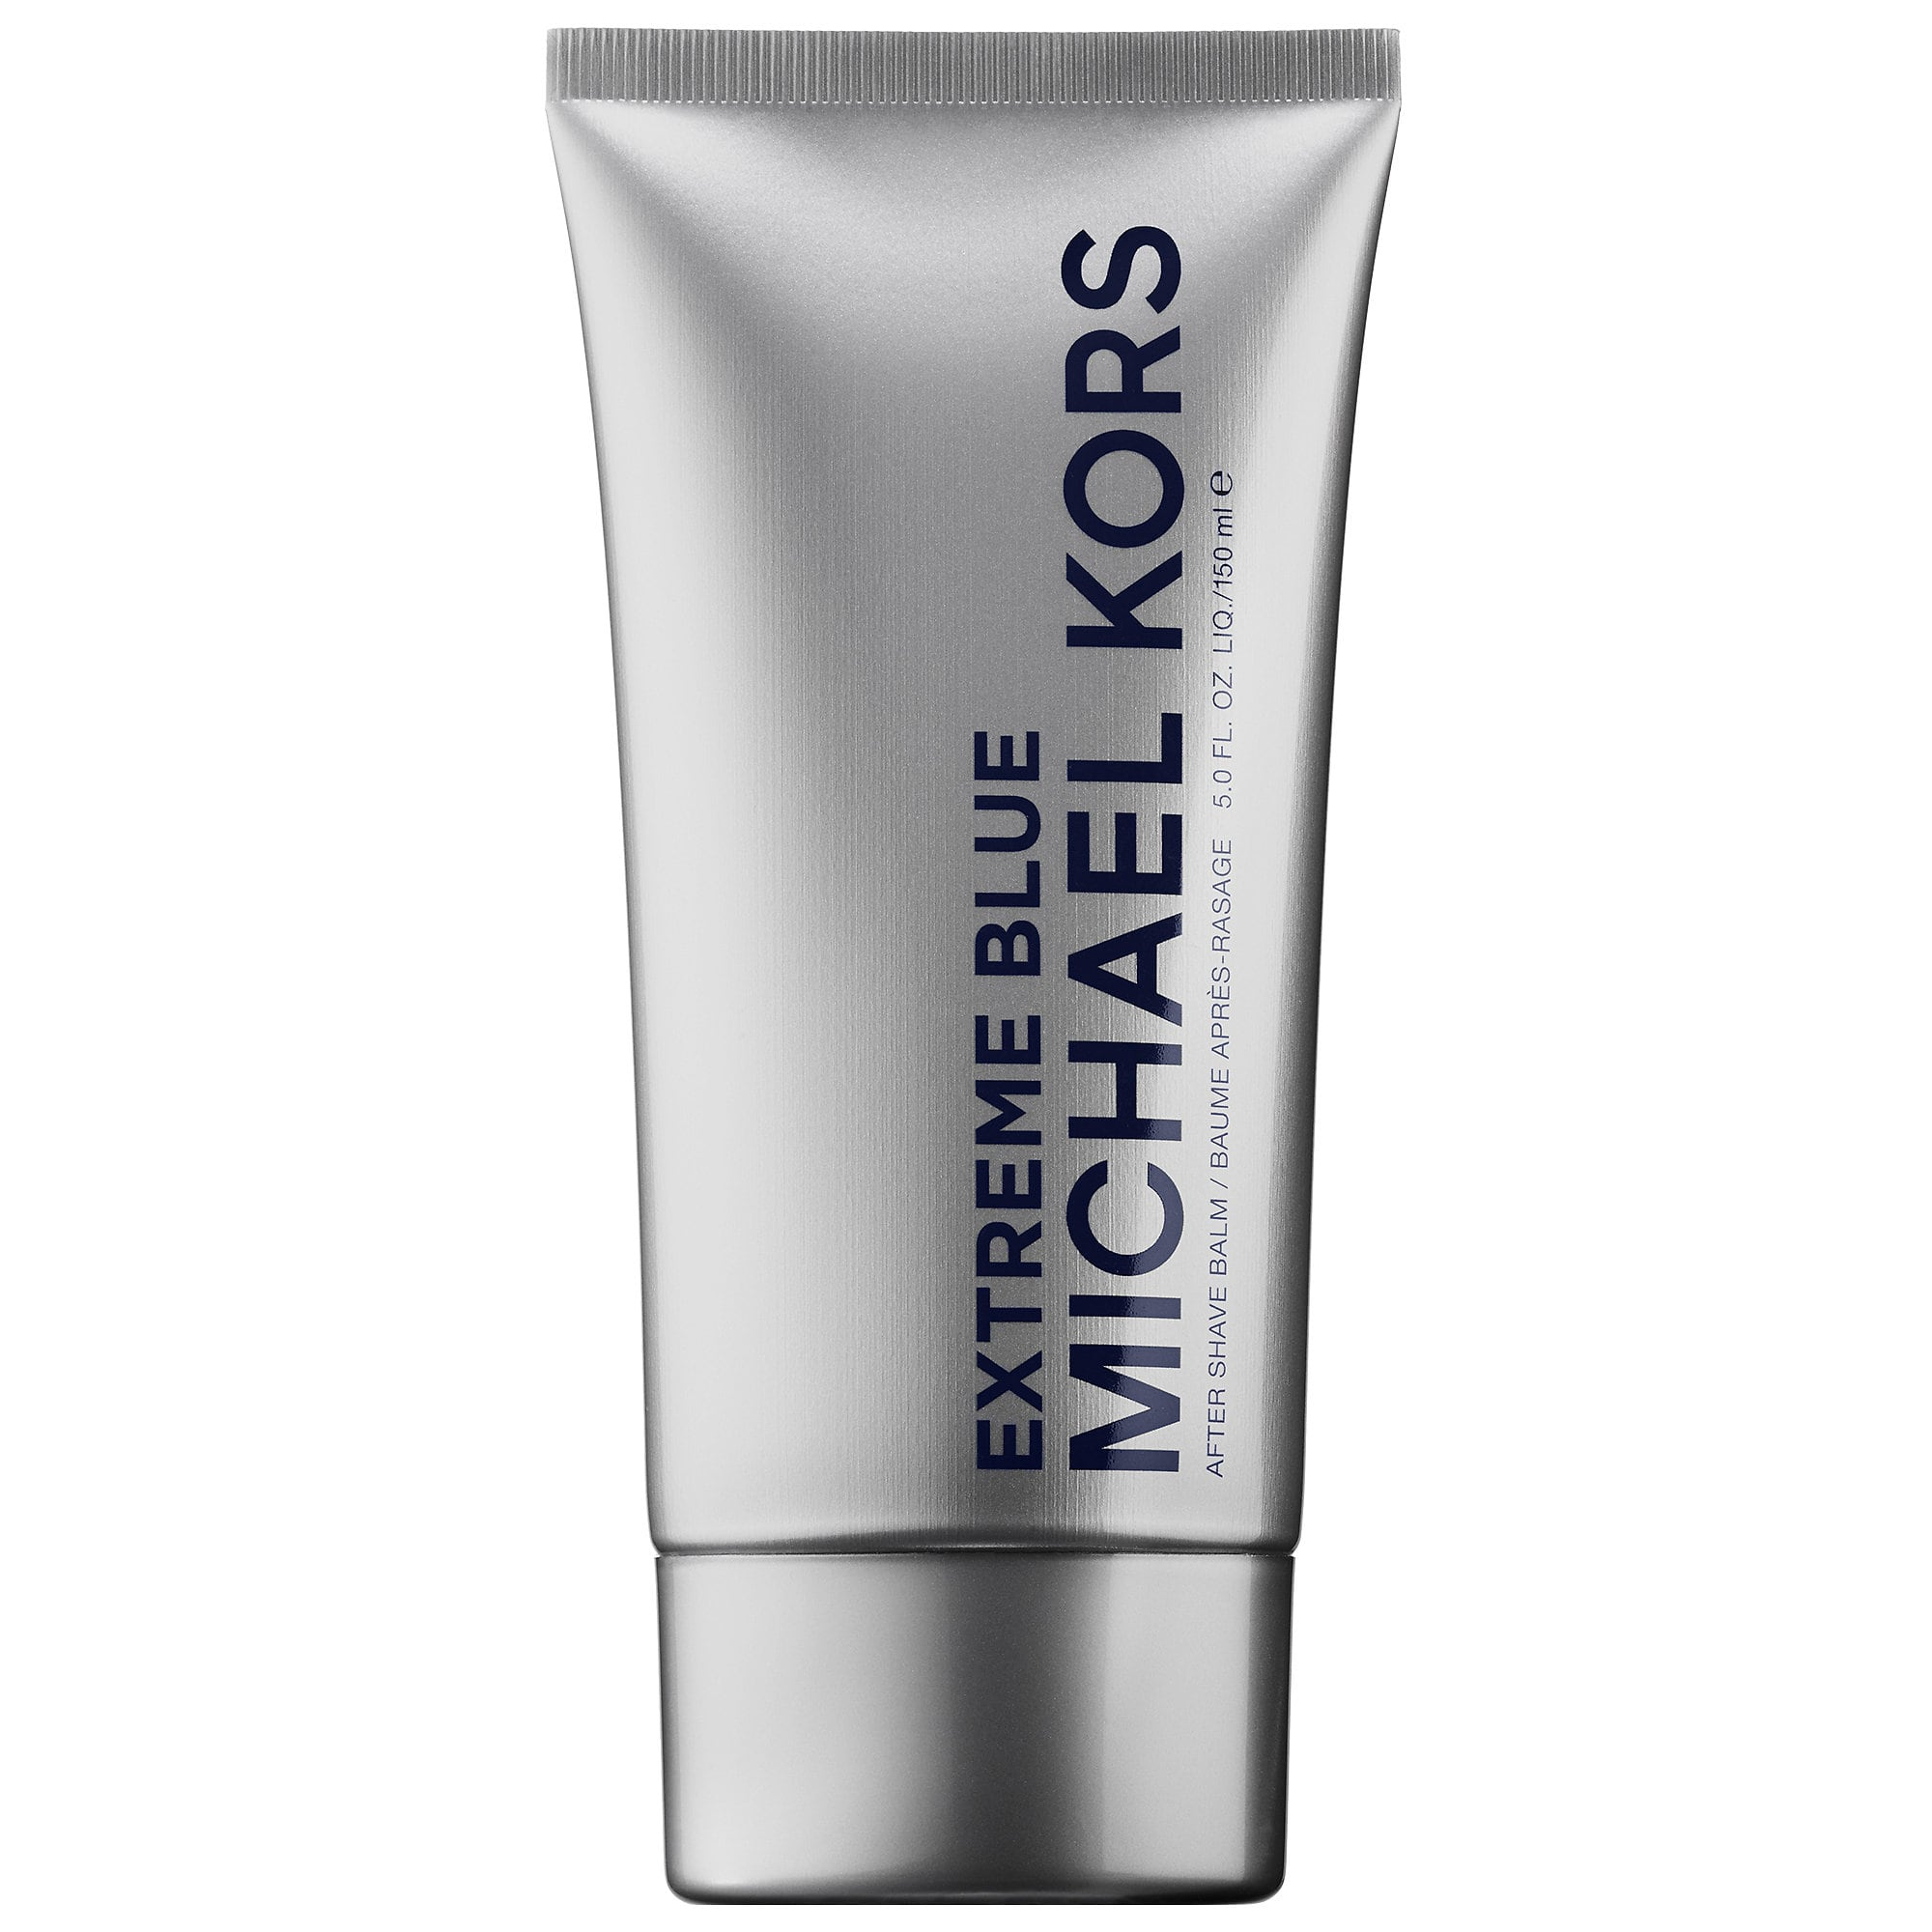 Extreme Blue After Shave Balm